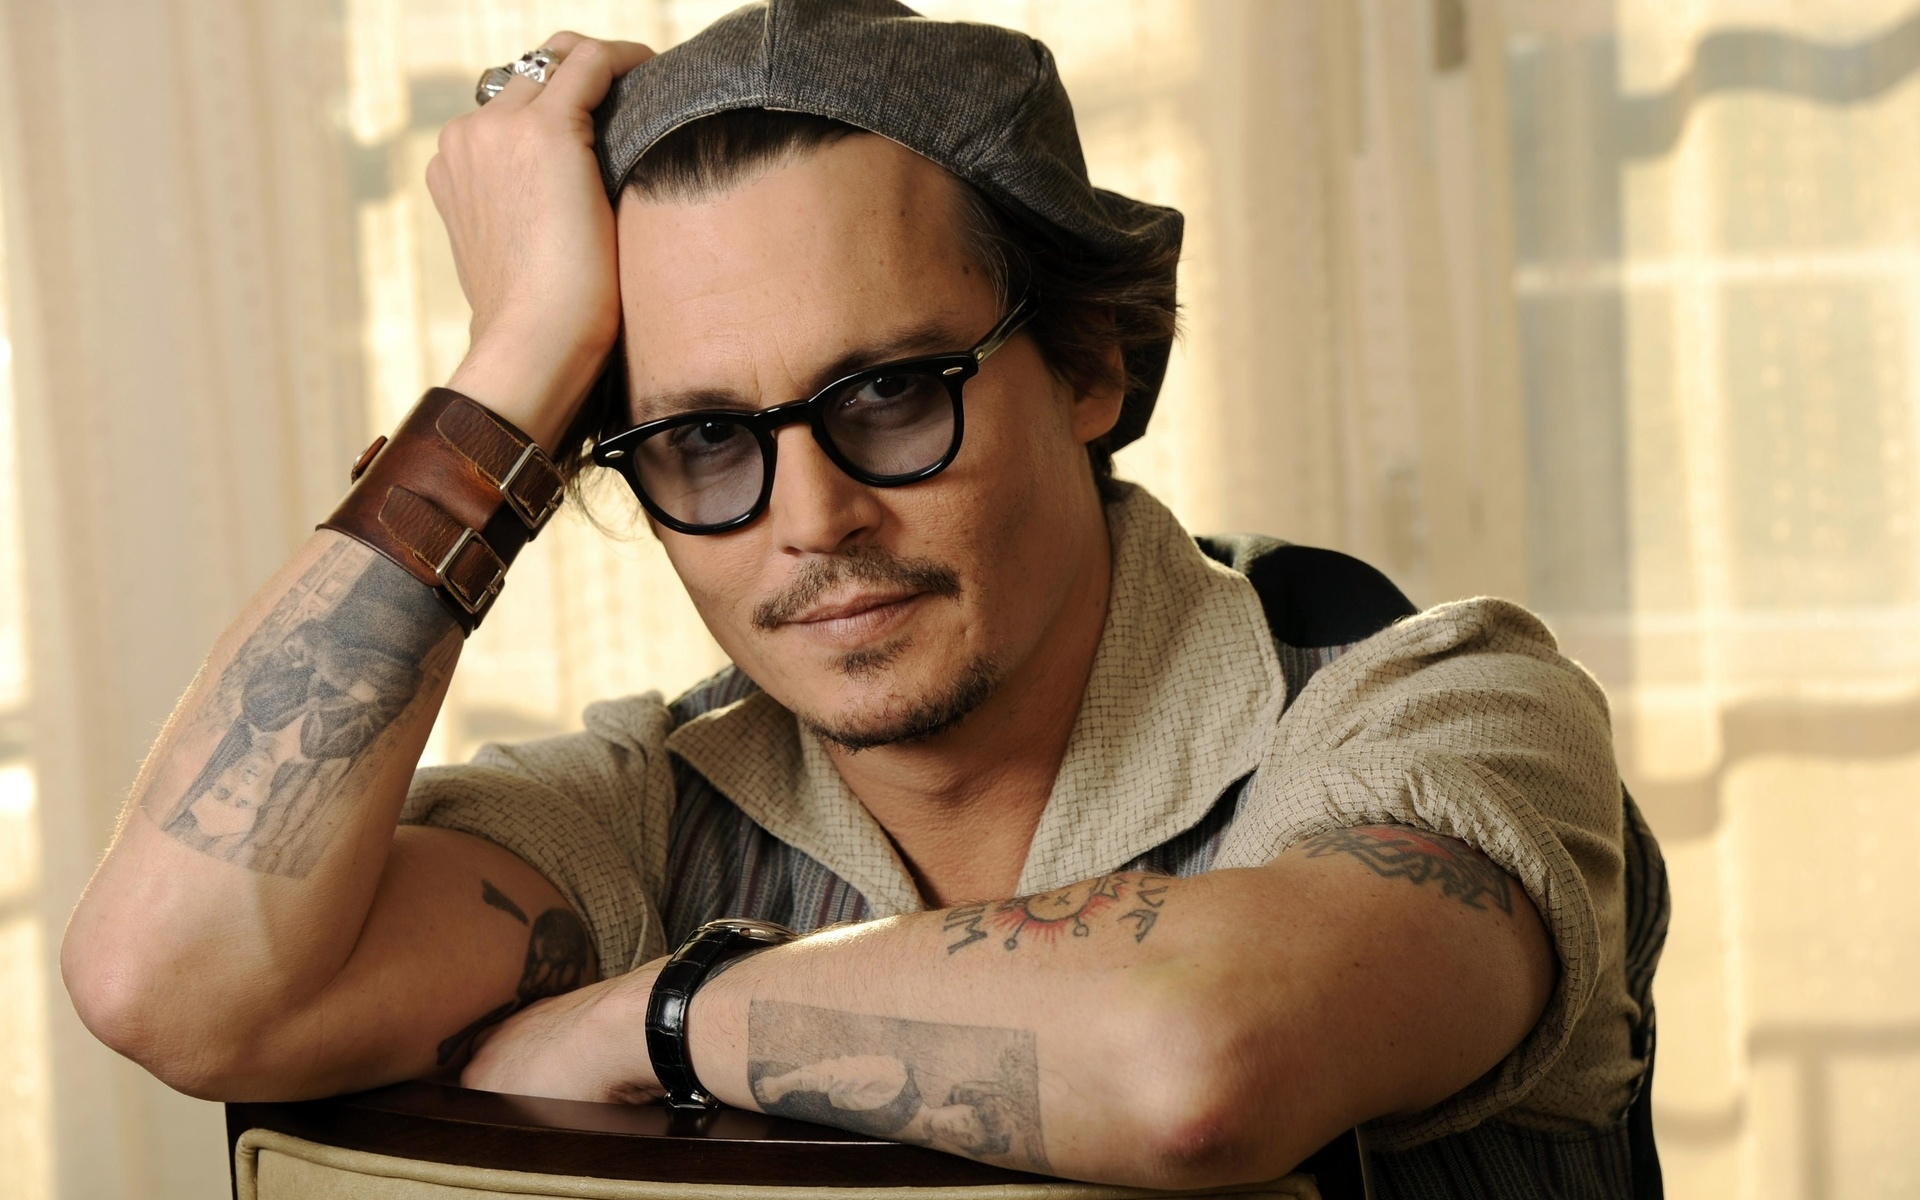 Fondos De Pantalla De Johnny Depp, Wallpapers HD Gratis